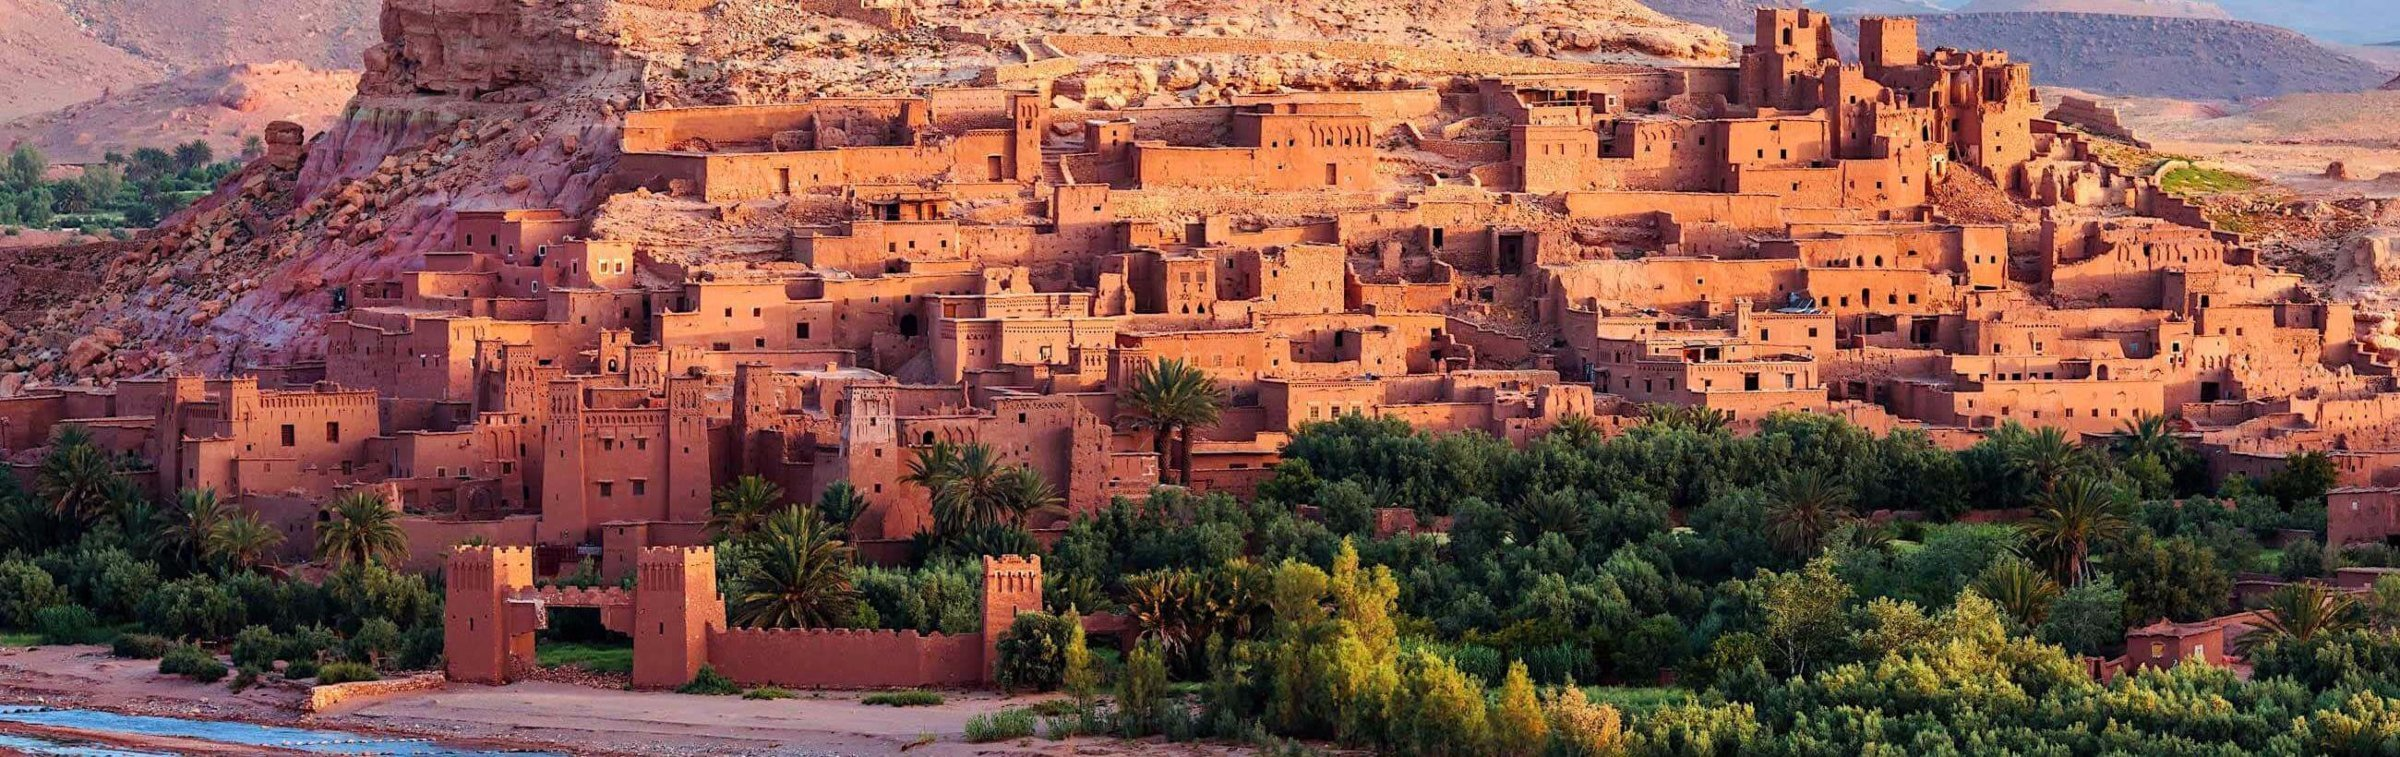 14-Day Morocco Cultural Experience - Morocco Itinerary